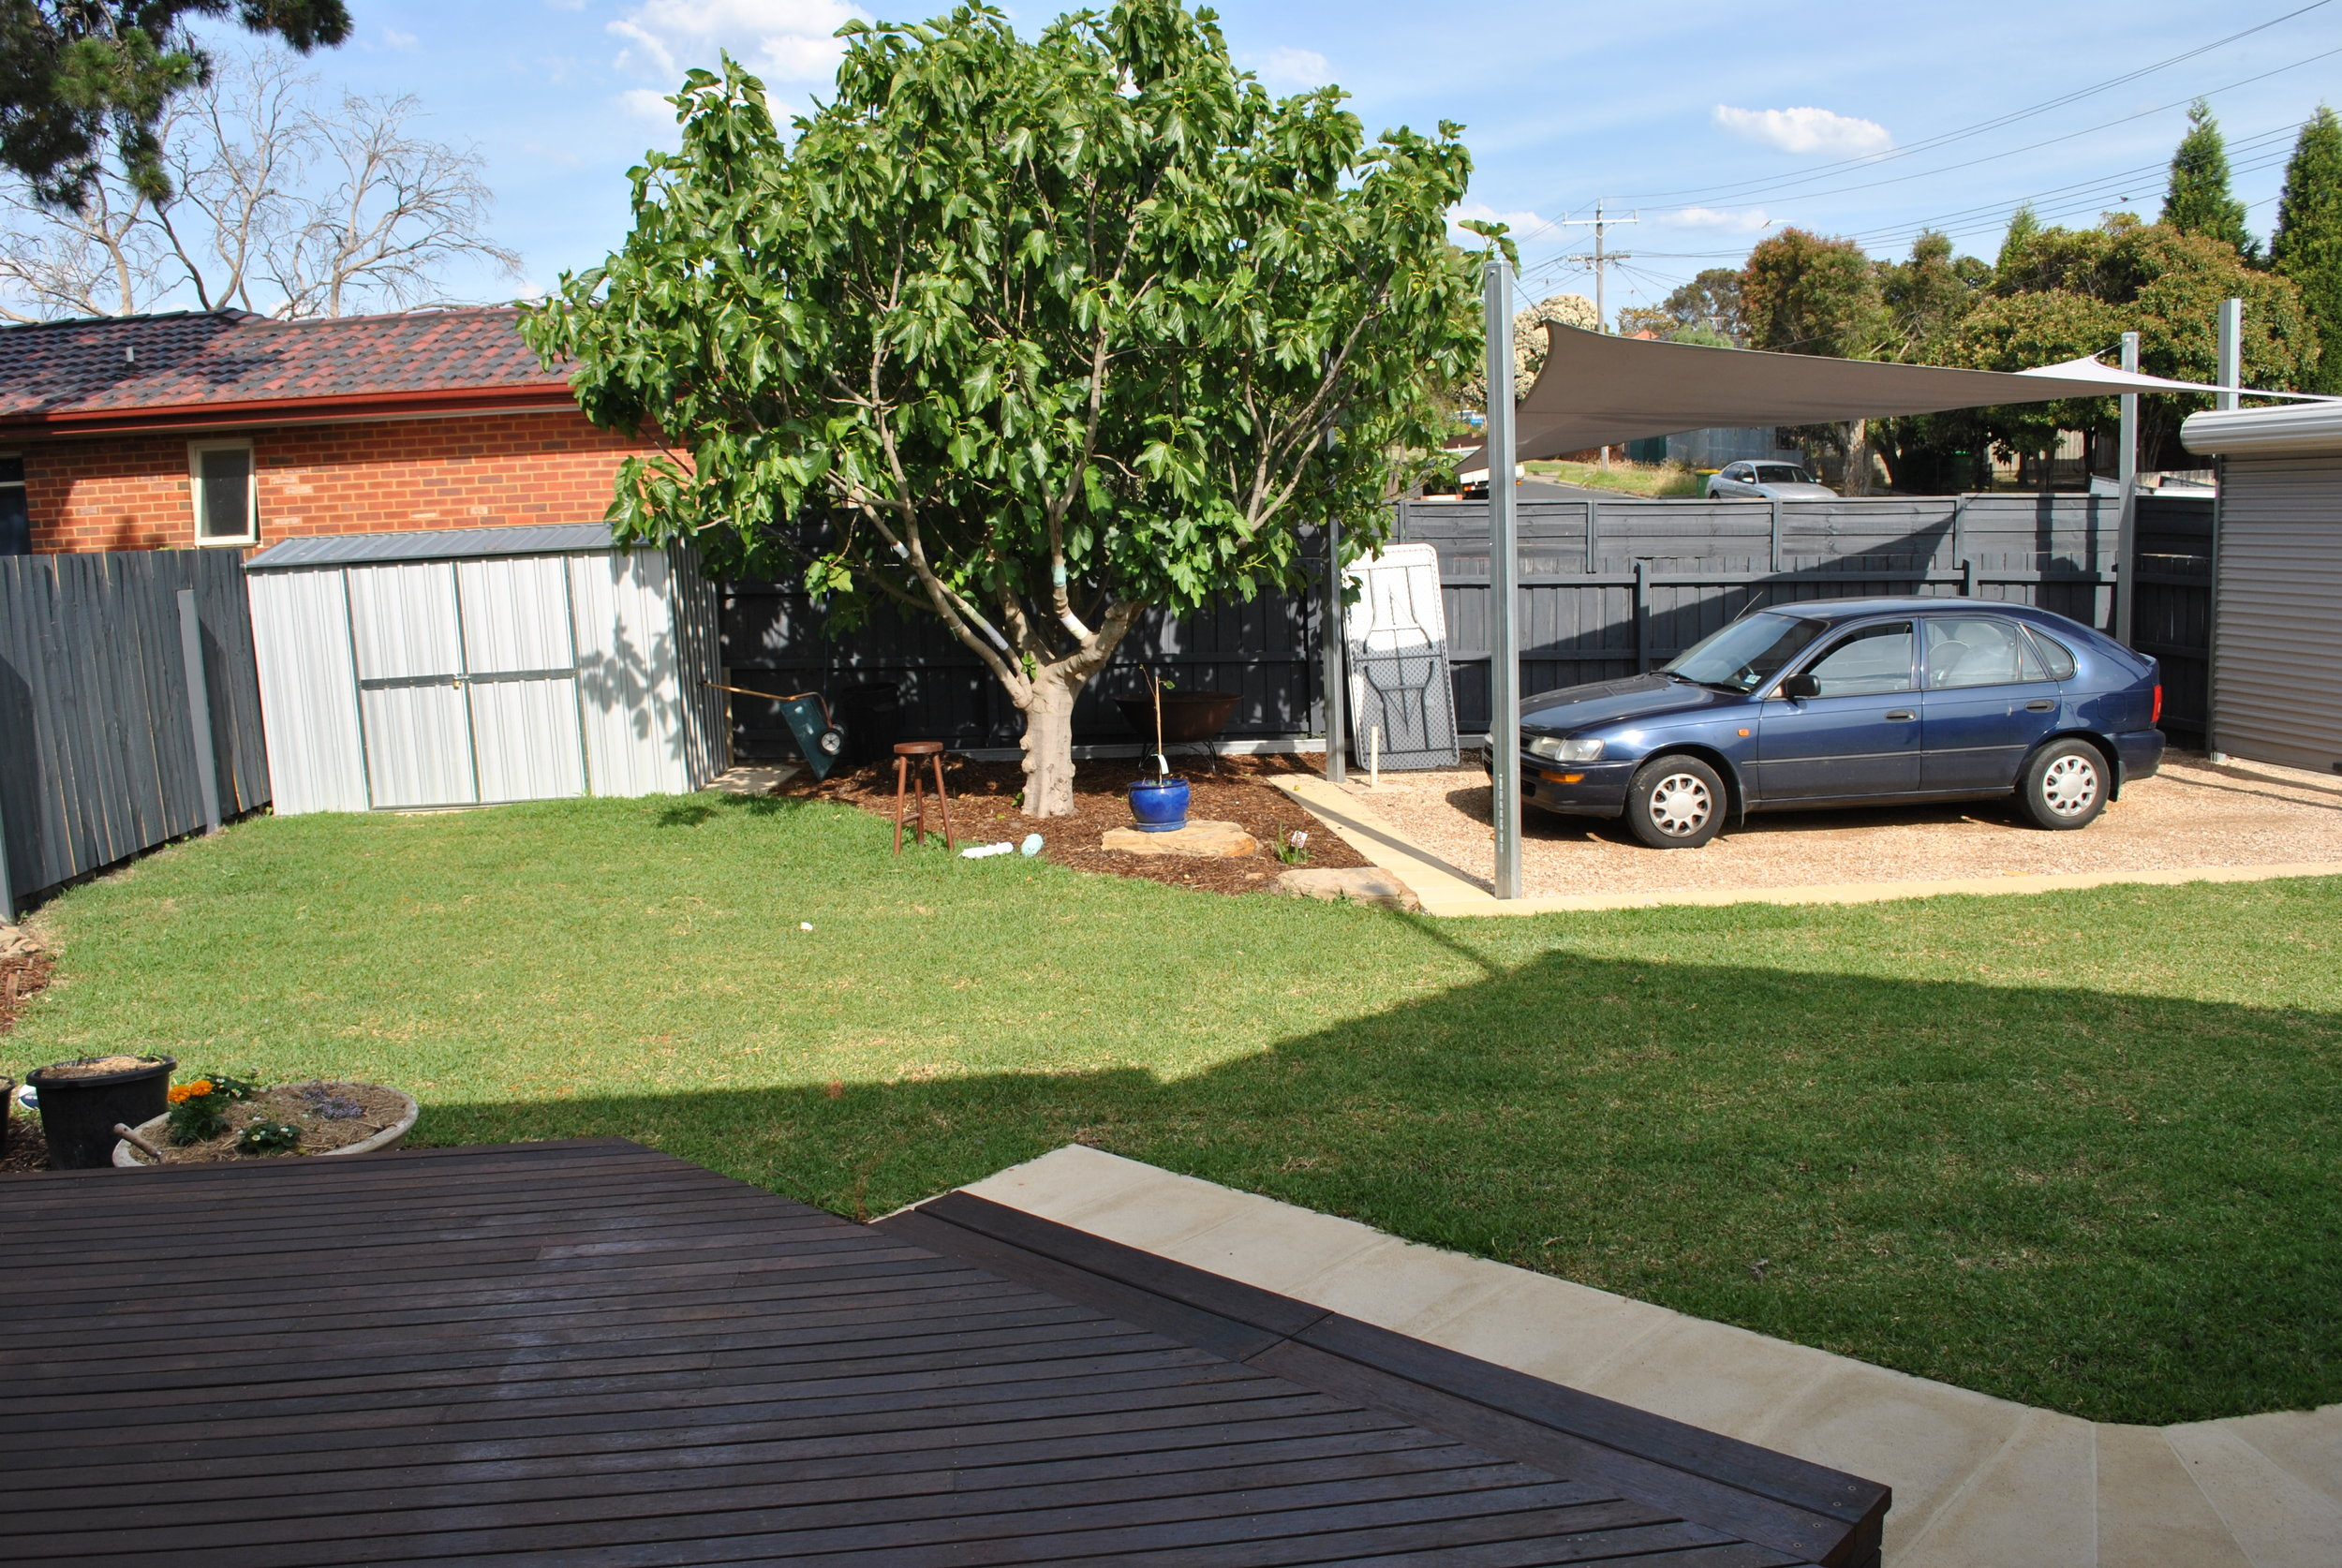 From the deck to the yard. I do love our back yard. We had to do a bit of rejigging to avoid cutting down the fig tree and fit a shed and carport without losing too much space, but now it is a awesome, private, BIG and green yard.